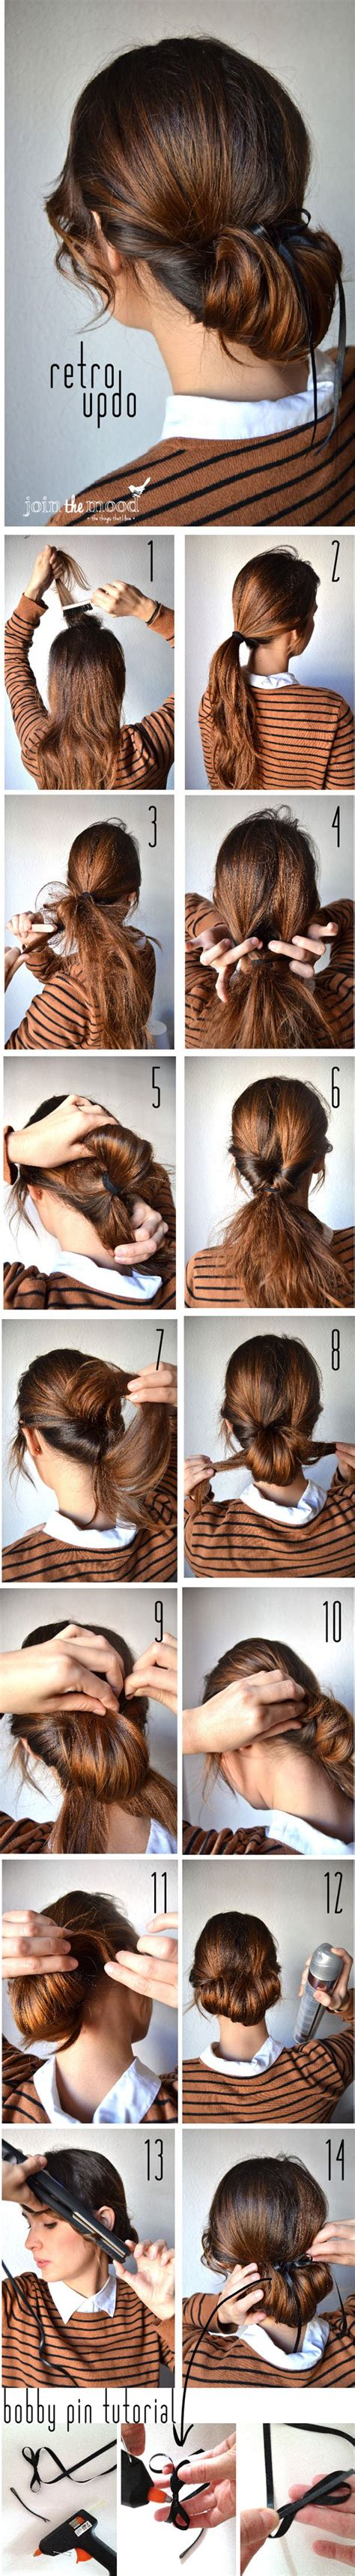 easy vintage hairstyles 20 easy hairstyle tutorials for your everyday look